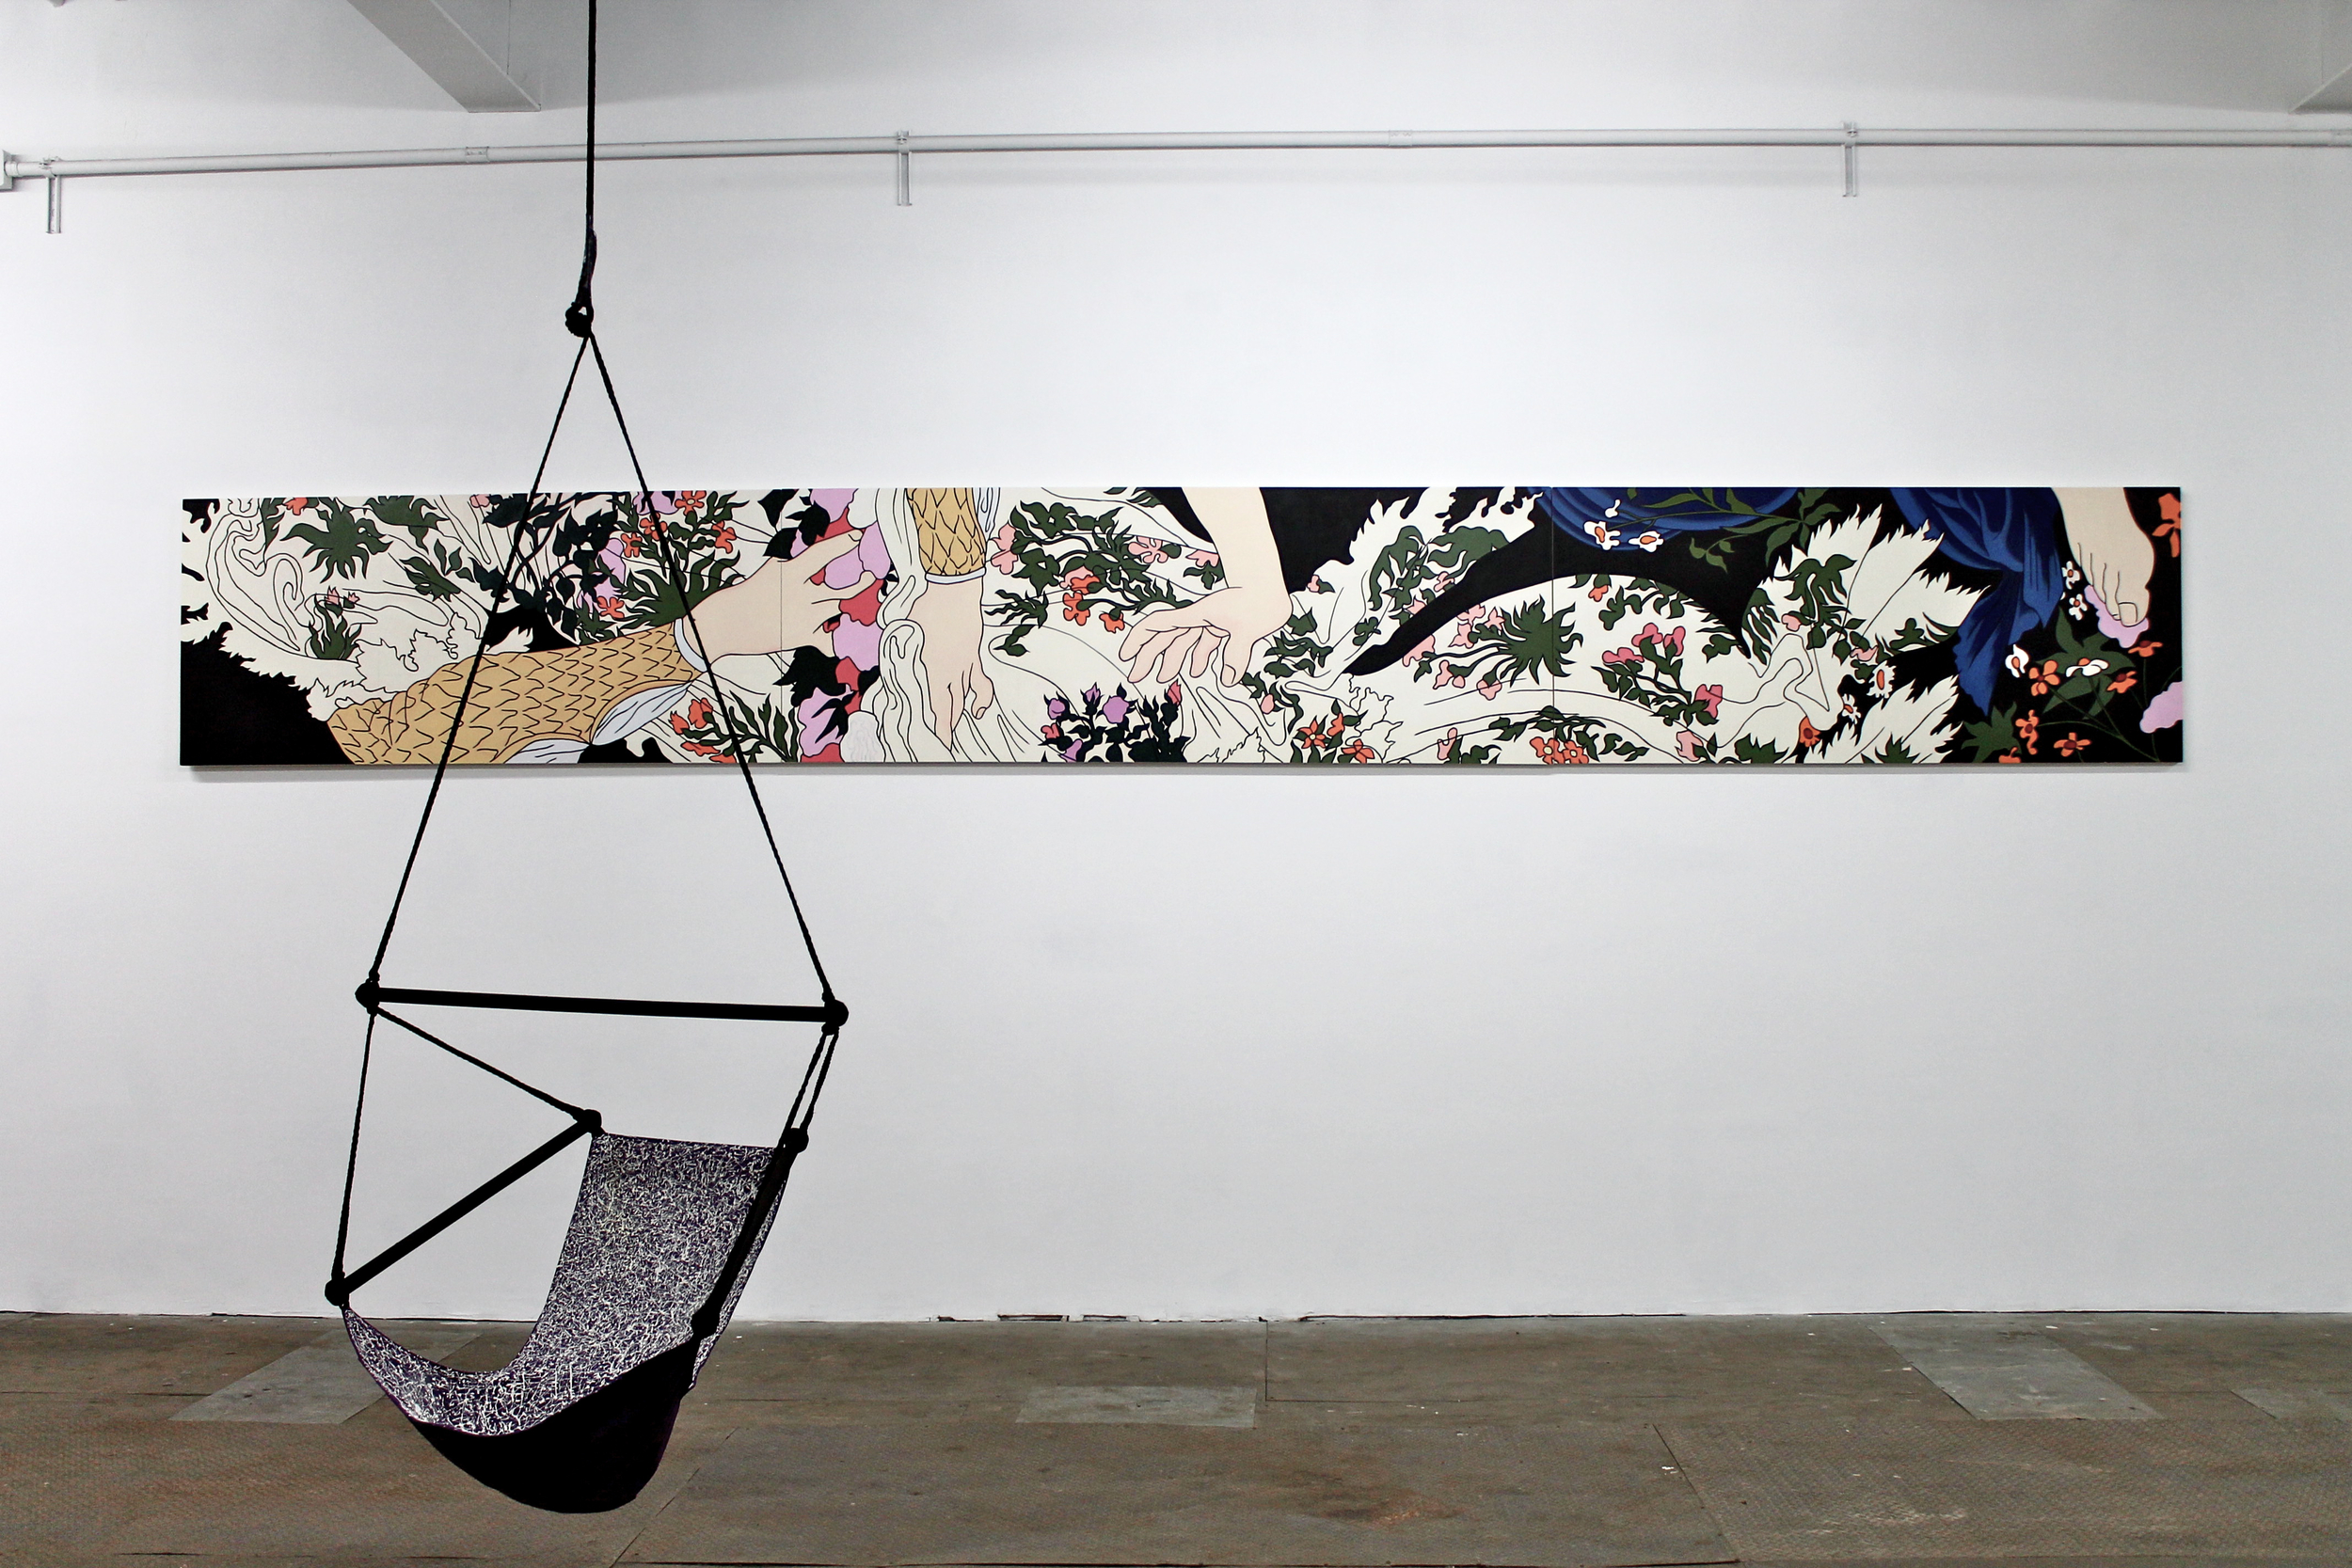 Installed as a decorative frieze is Caitlin Keogh's painting , Fragment From Botticelli's Primavera Allegory: Chloris, a Nymph, is Pursued and Raped by the Wind God Zephyrus. After the Rape, Chloris Becomes the Goddess Flora, the Source of All Flowers,  2015 .  Acrylic on canvas .